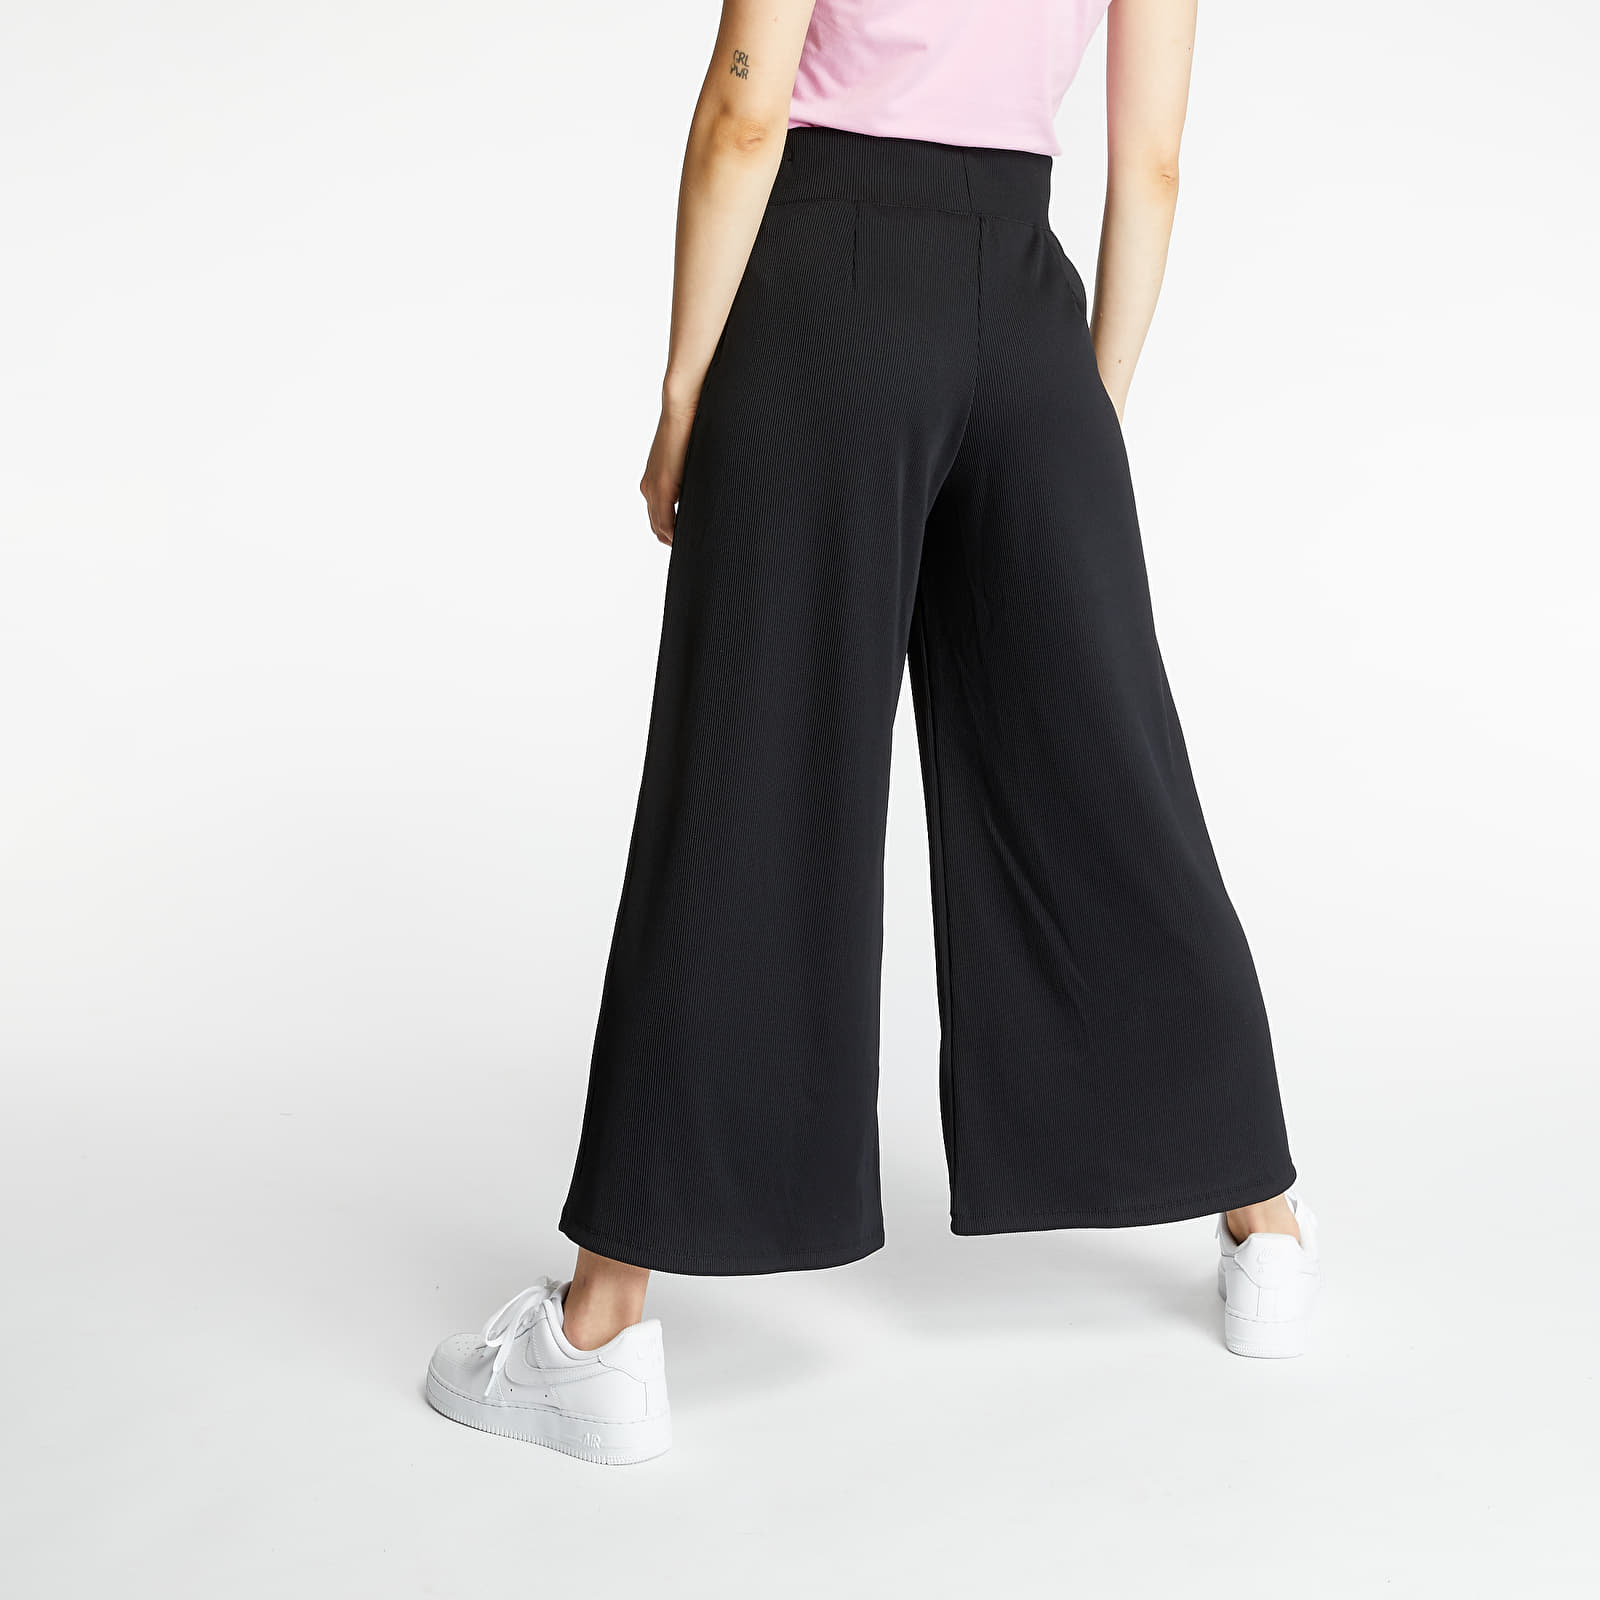 Pants and jeans Nike Sportswear Ribbed Pants Black/ White